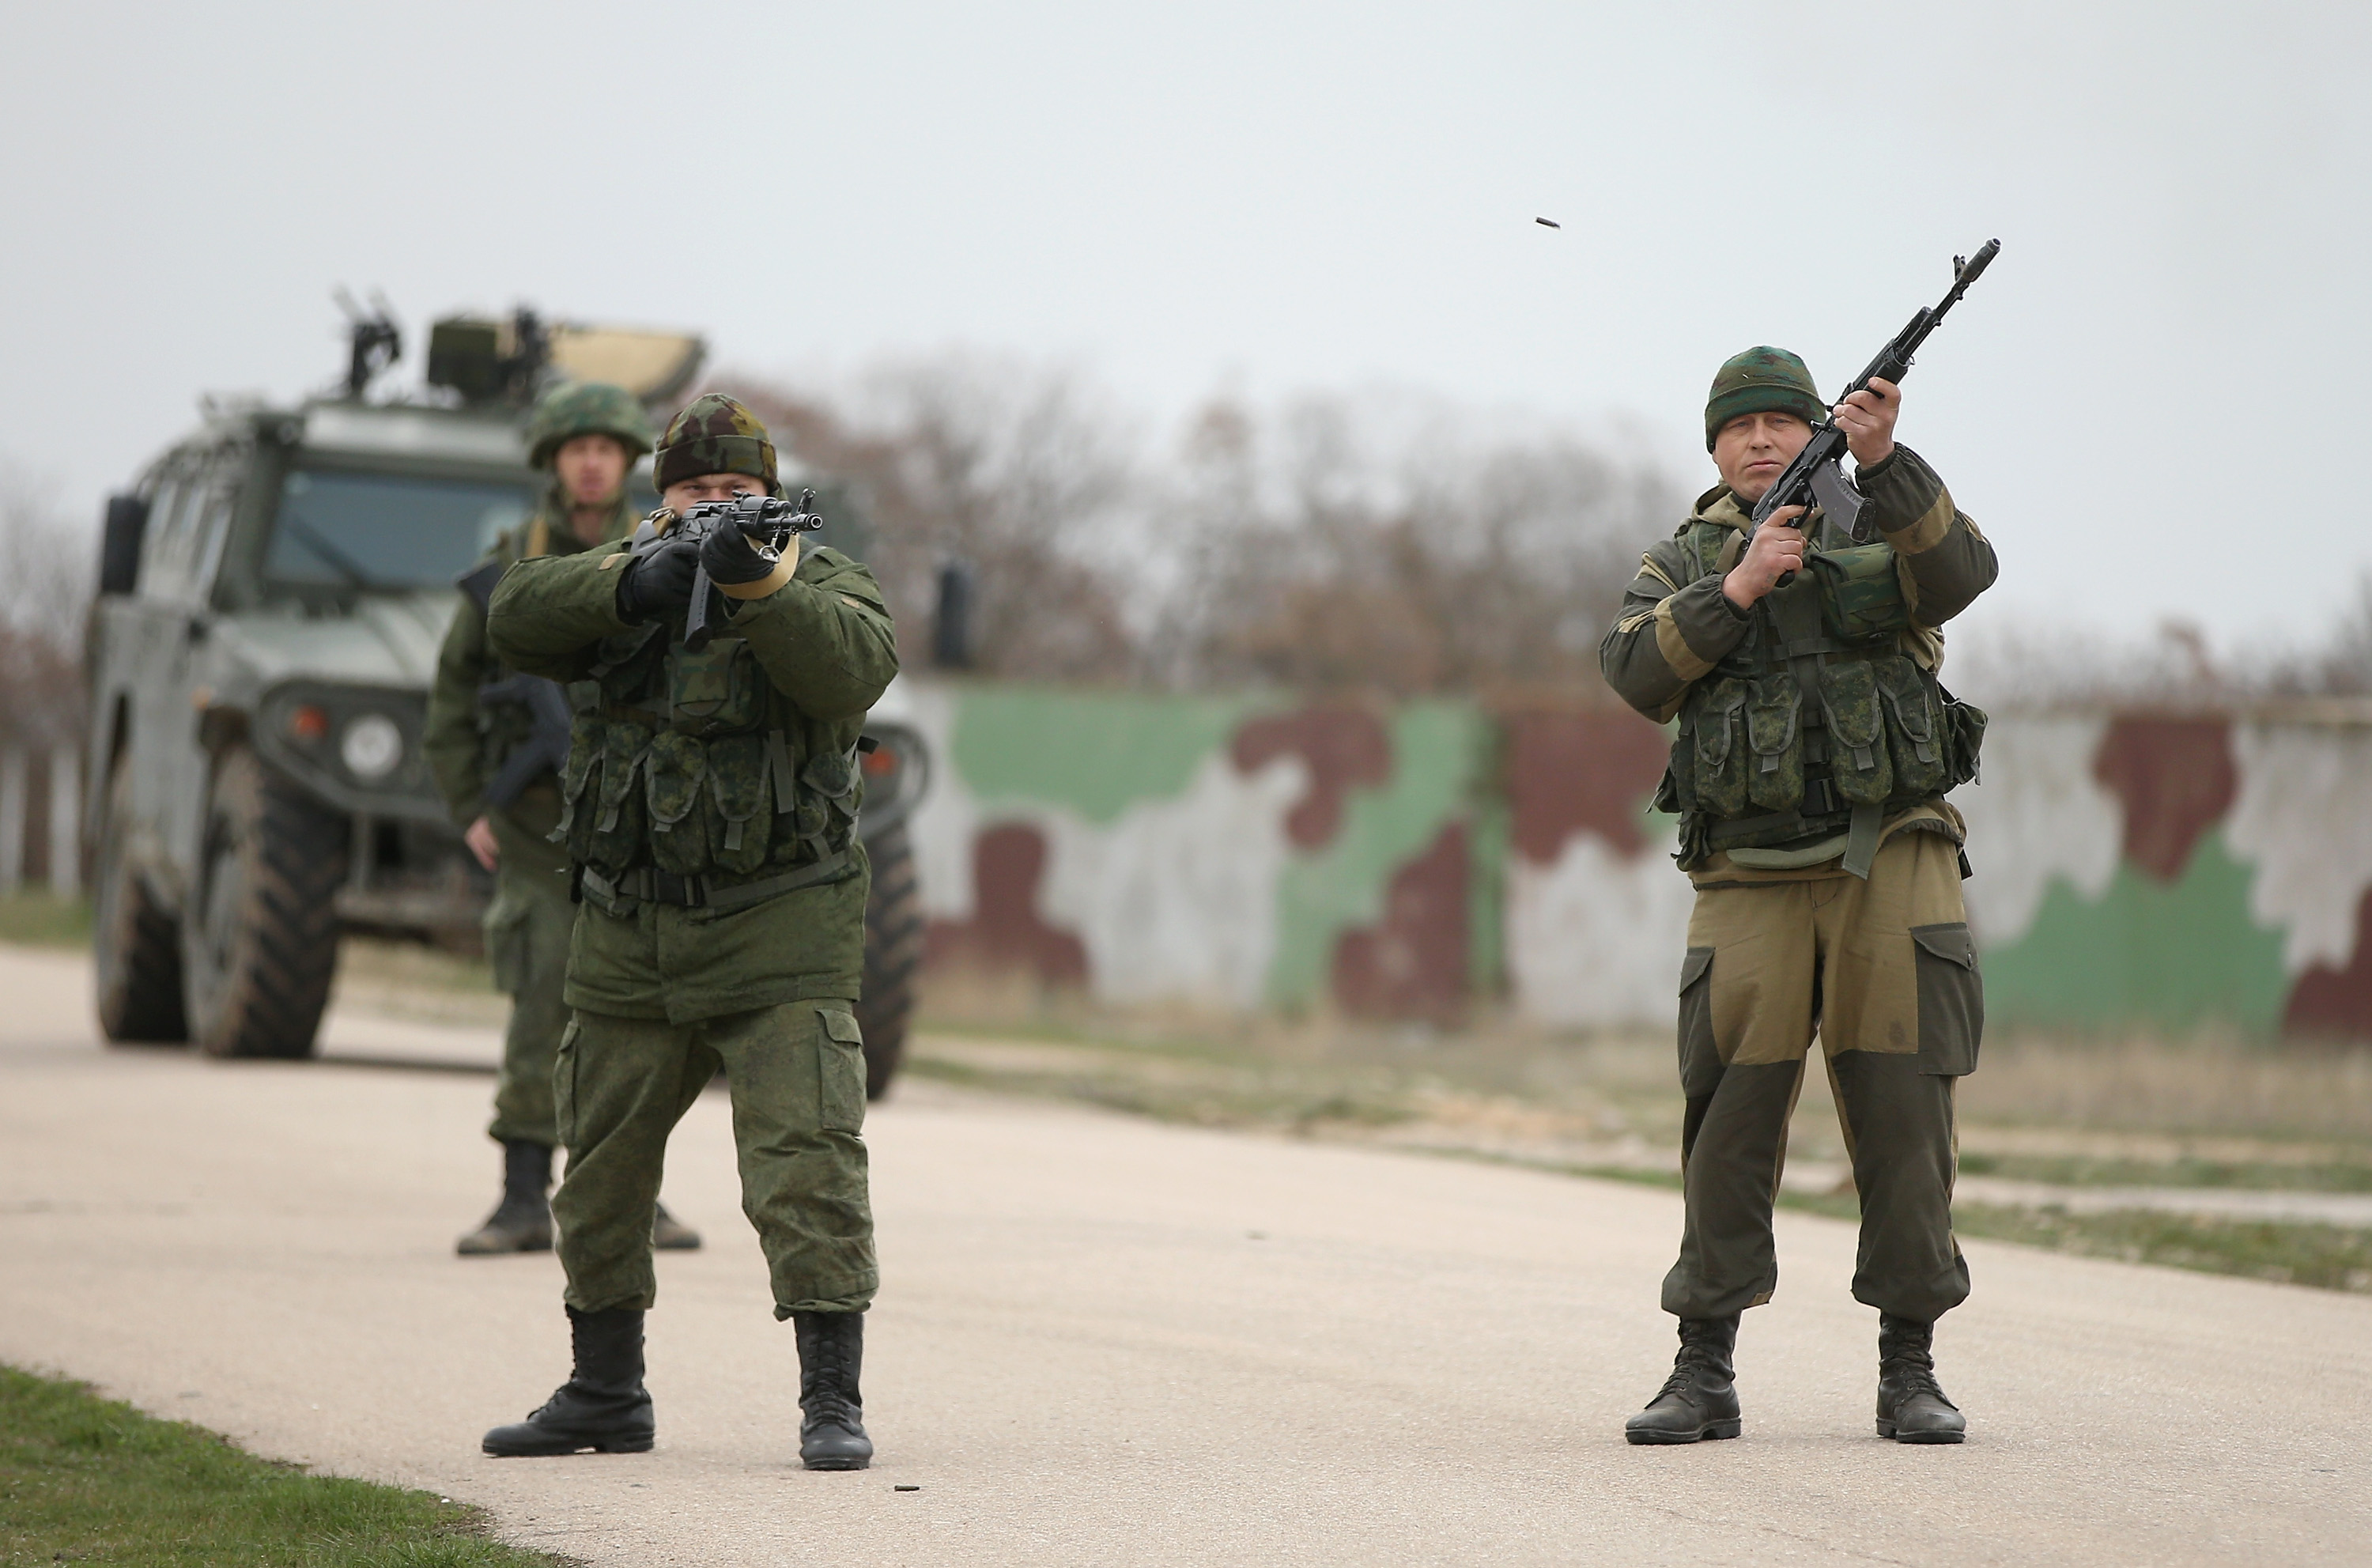 Troops under Russian command and in unmarked uniforms fired their weapons into the air on March 4 to warn Ukrainian troops to turn back at the Russian-occupied Belbek airbase in Crimea (Getty Images).